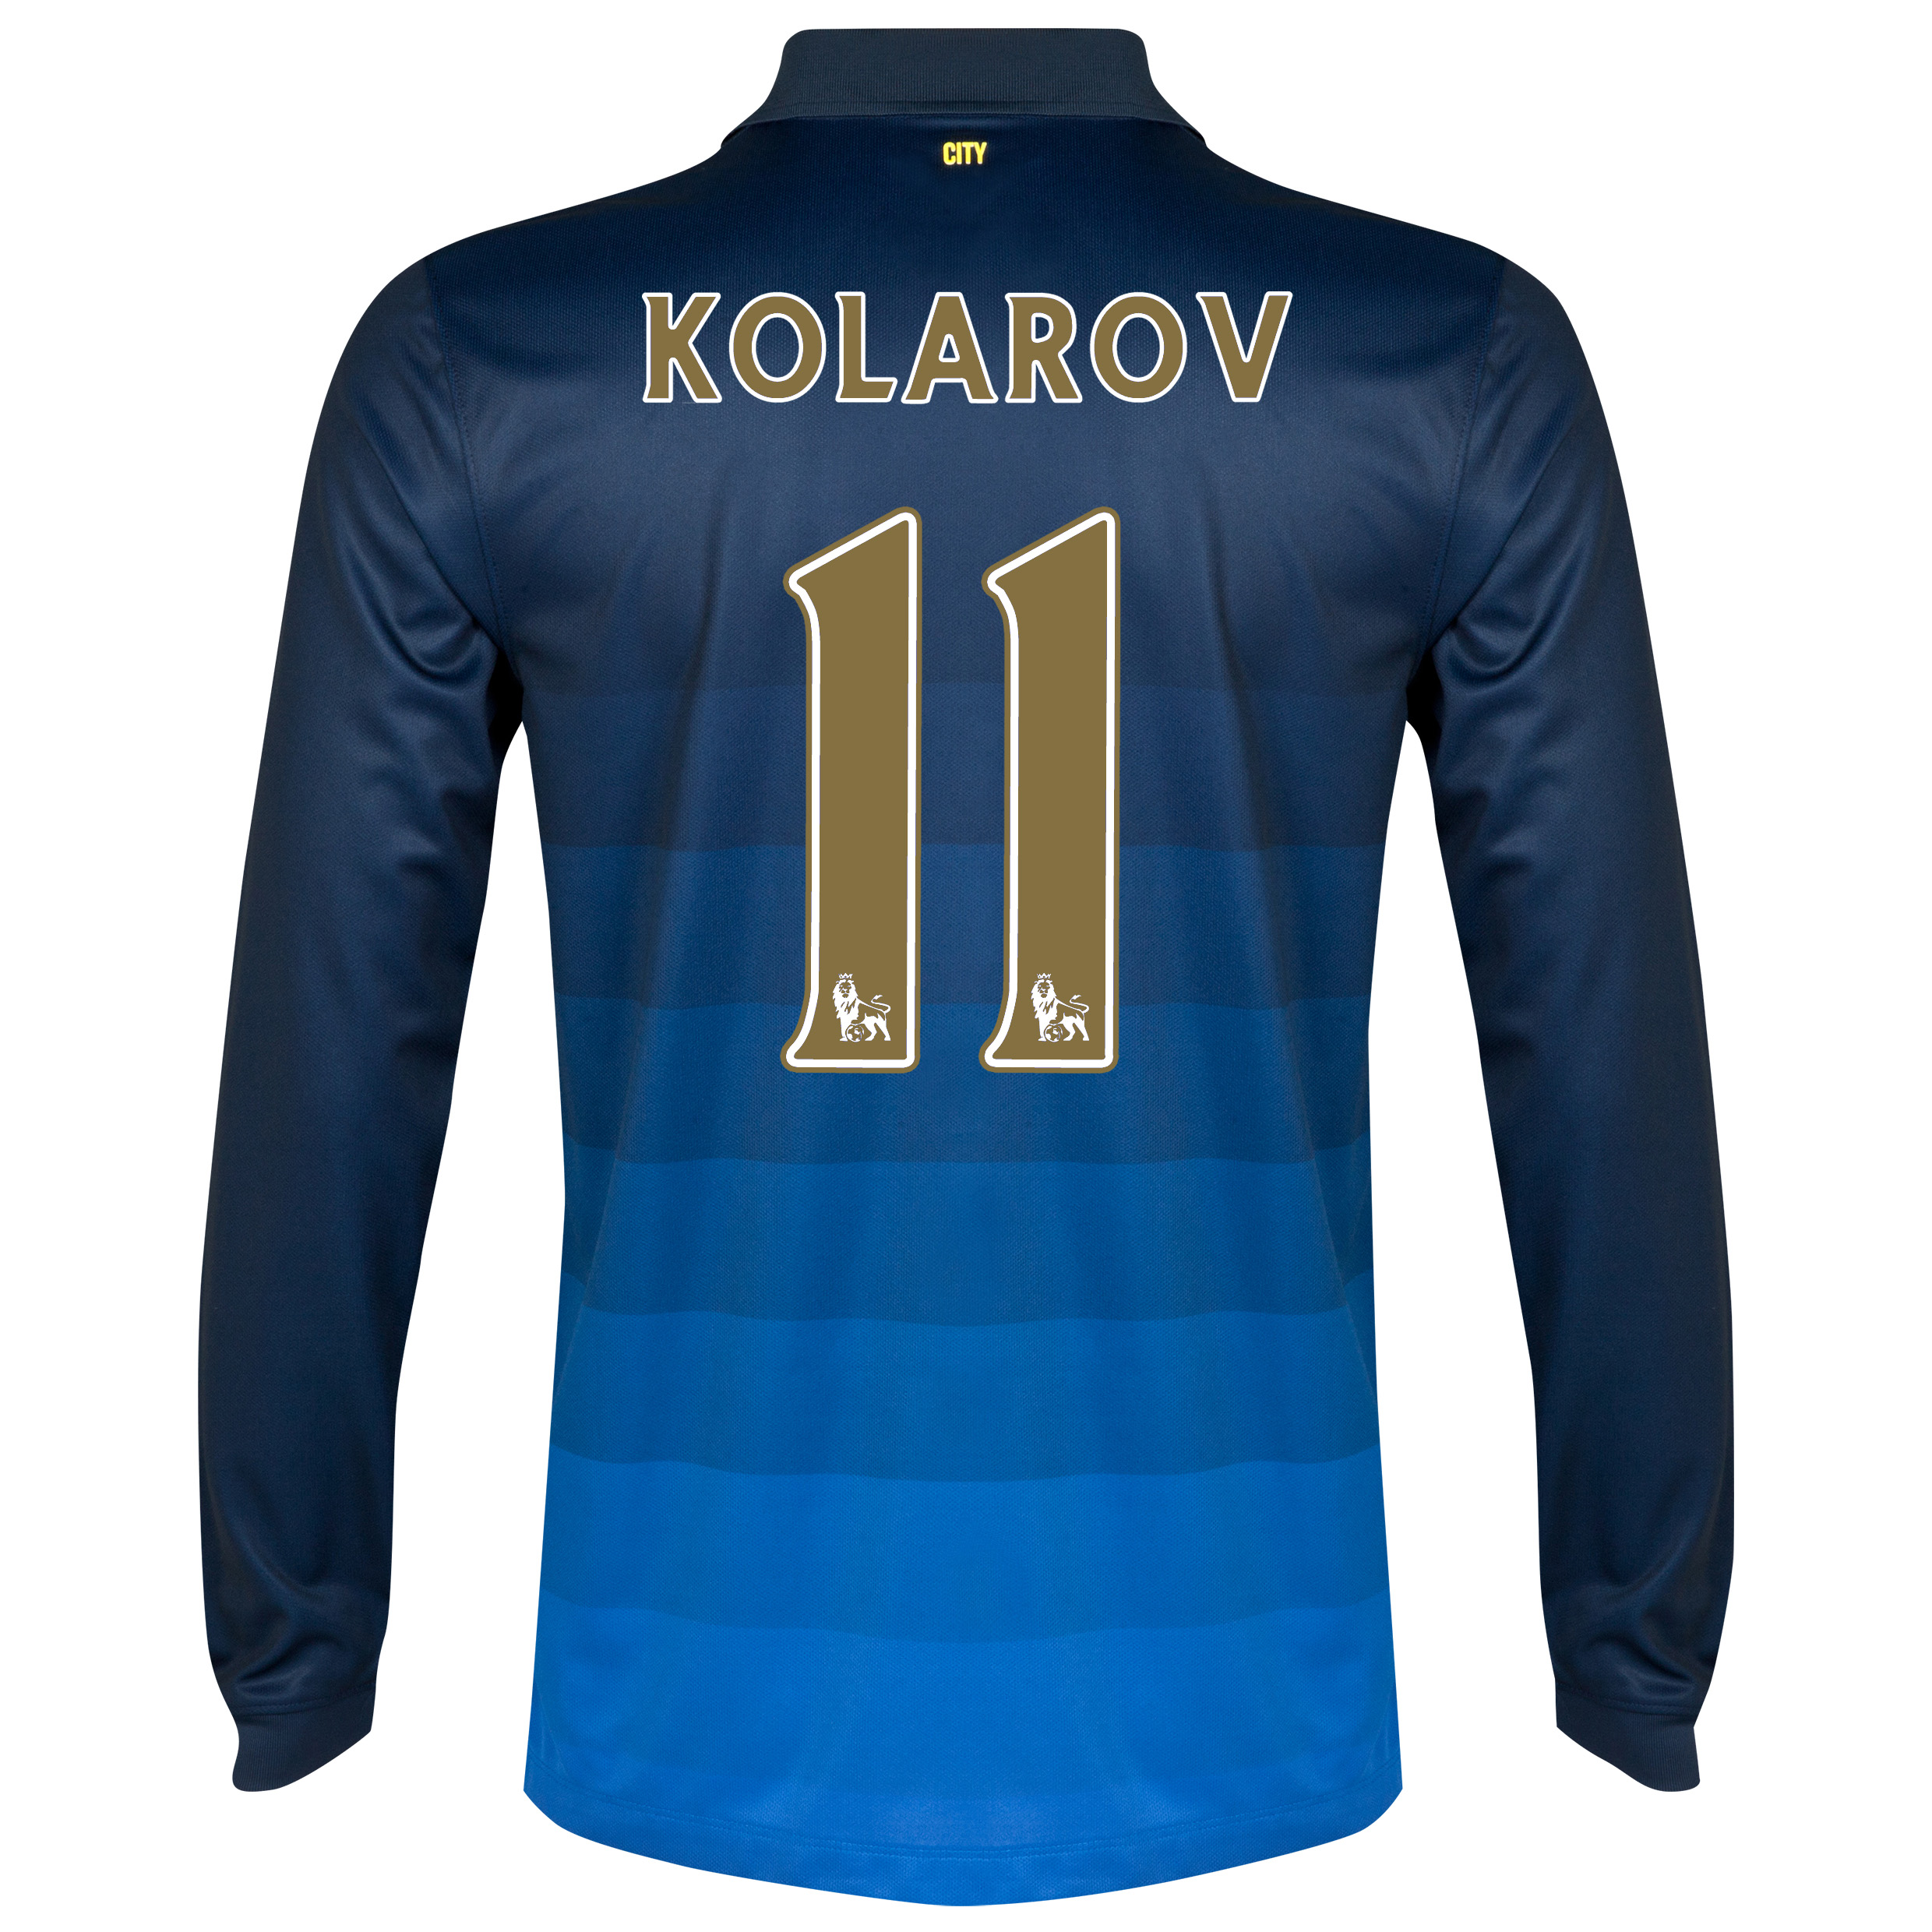 Manchester City Away Shirt 2014/15 - Long Sleeve Dk Blue with Kolarov 11 printing